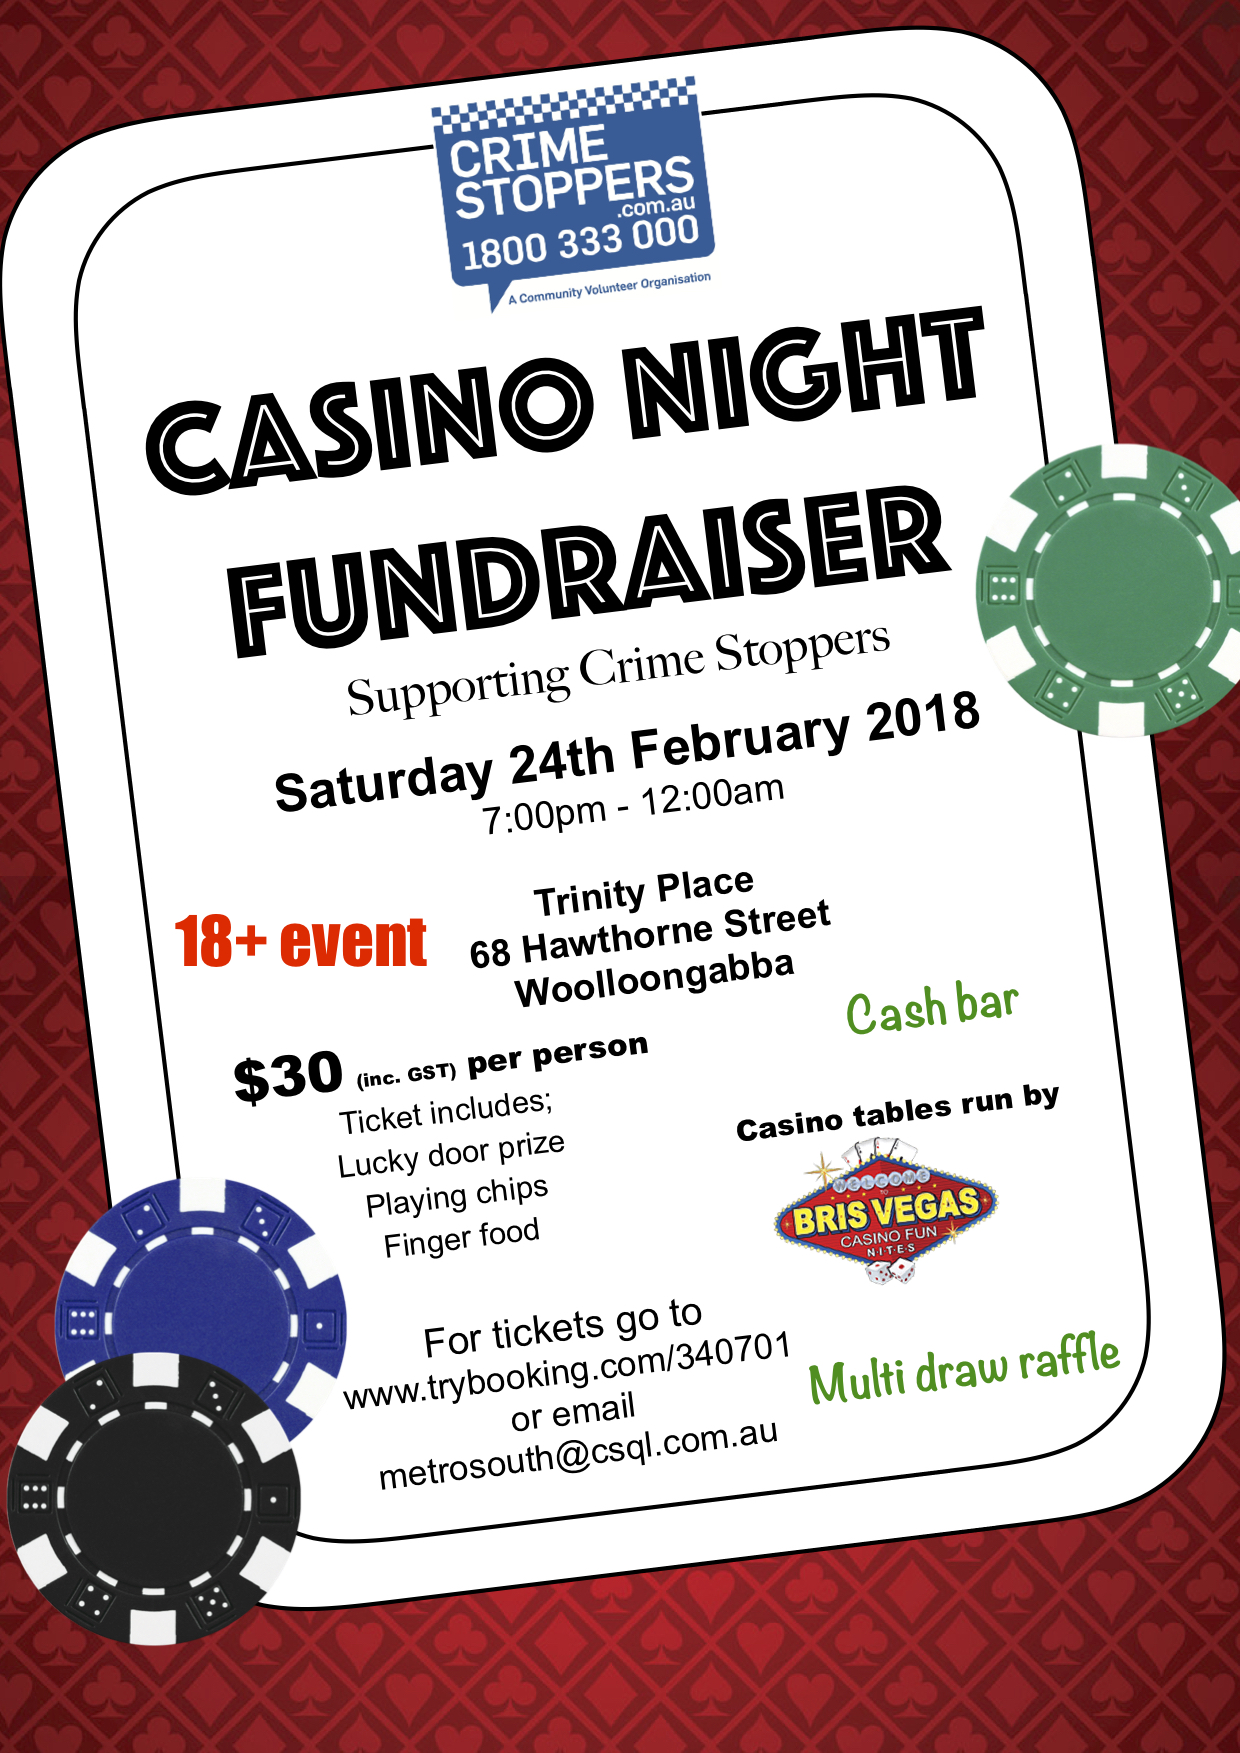 Casino Night Fundraiser: Crime Stoppers